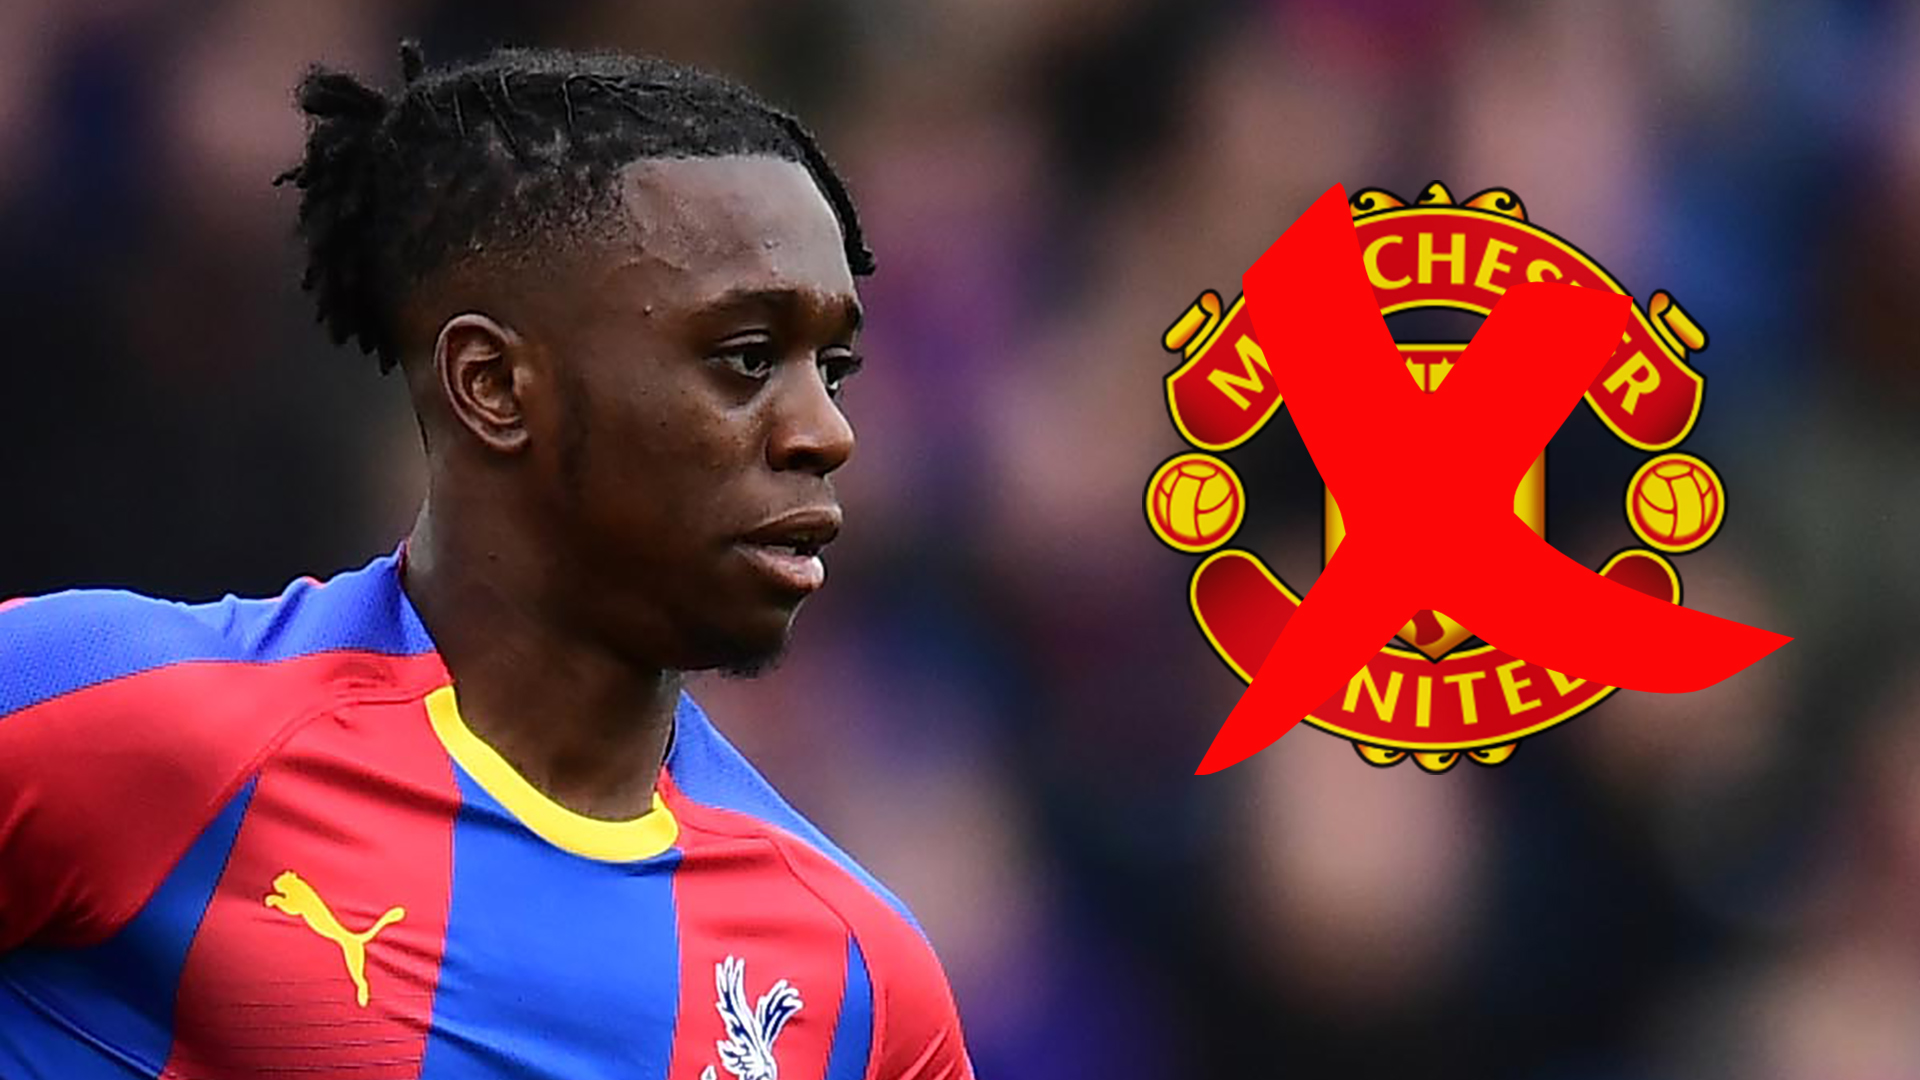 Man United consider 19-year-old as Aaron Wan-Bissaka alternative